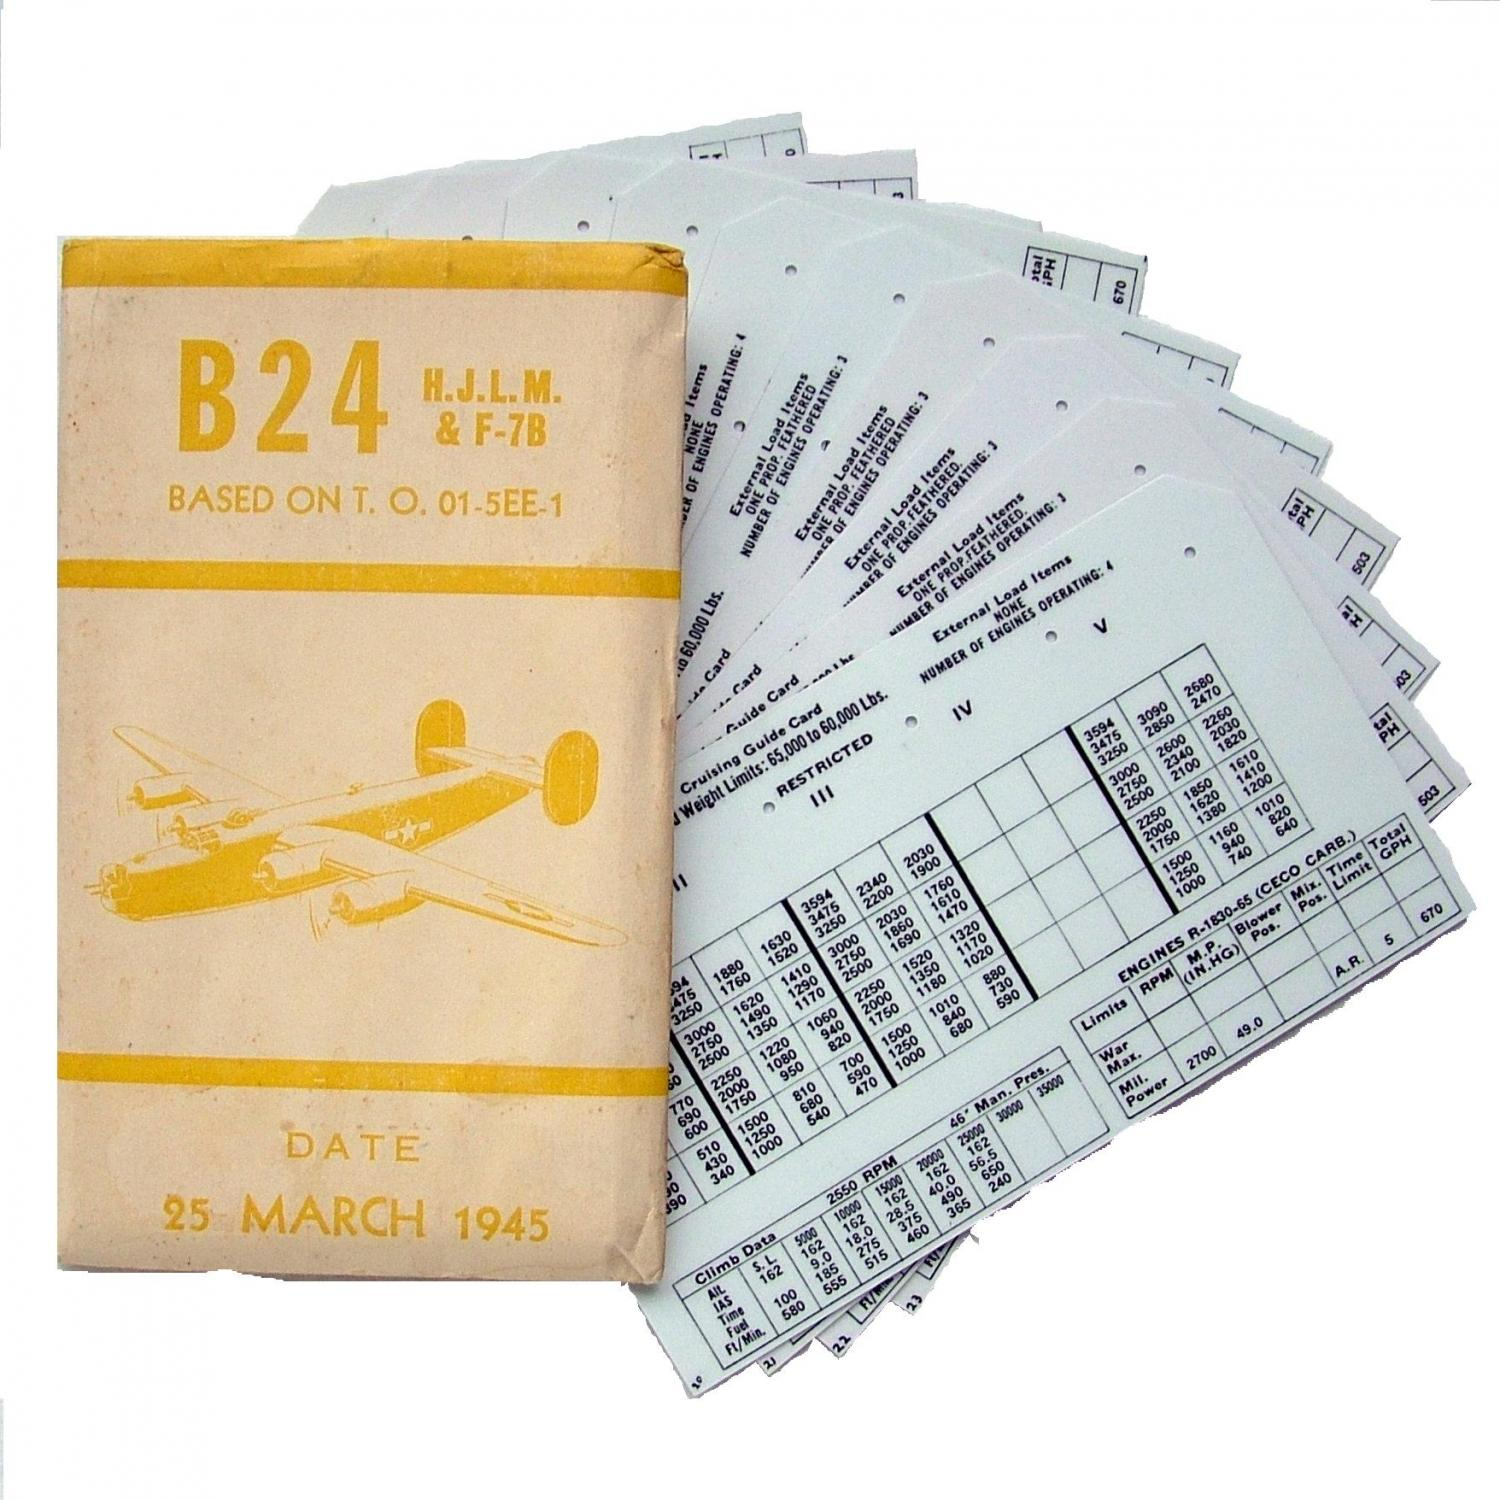 USAAF B-24 Aircraft Flight Operation Cards